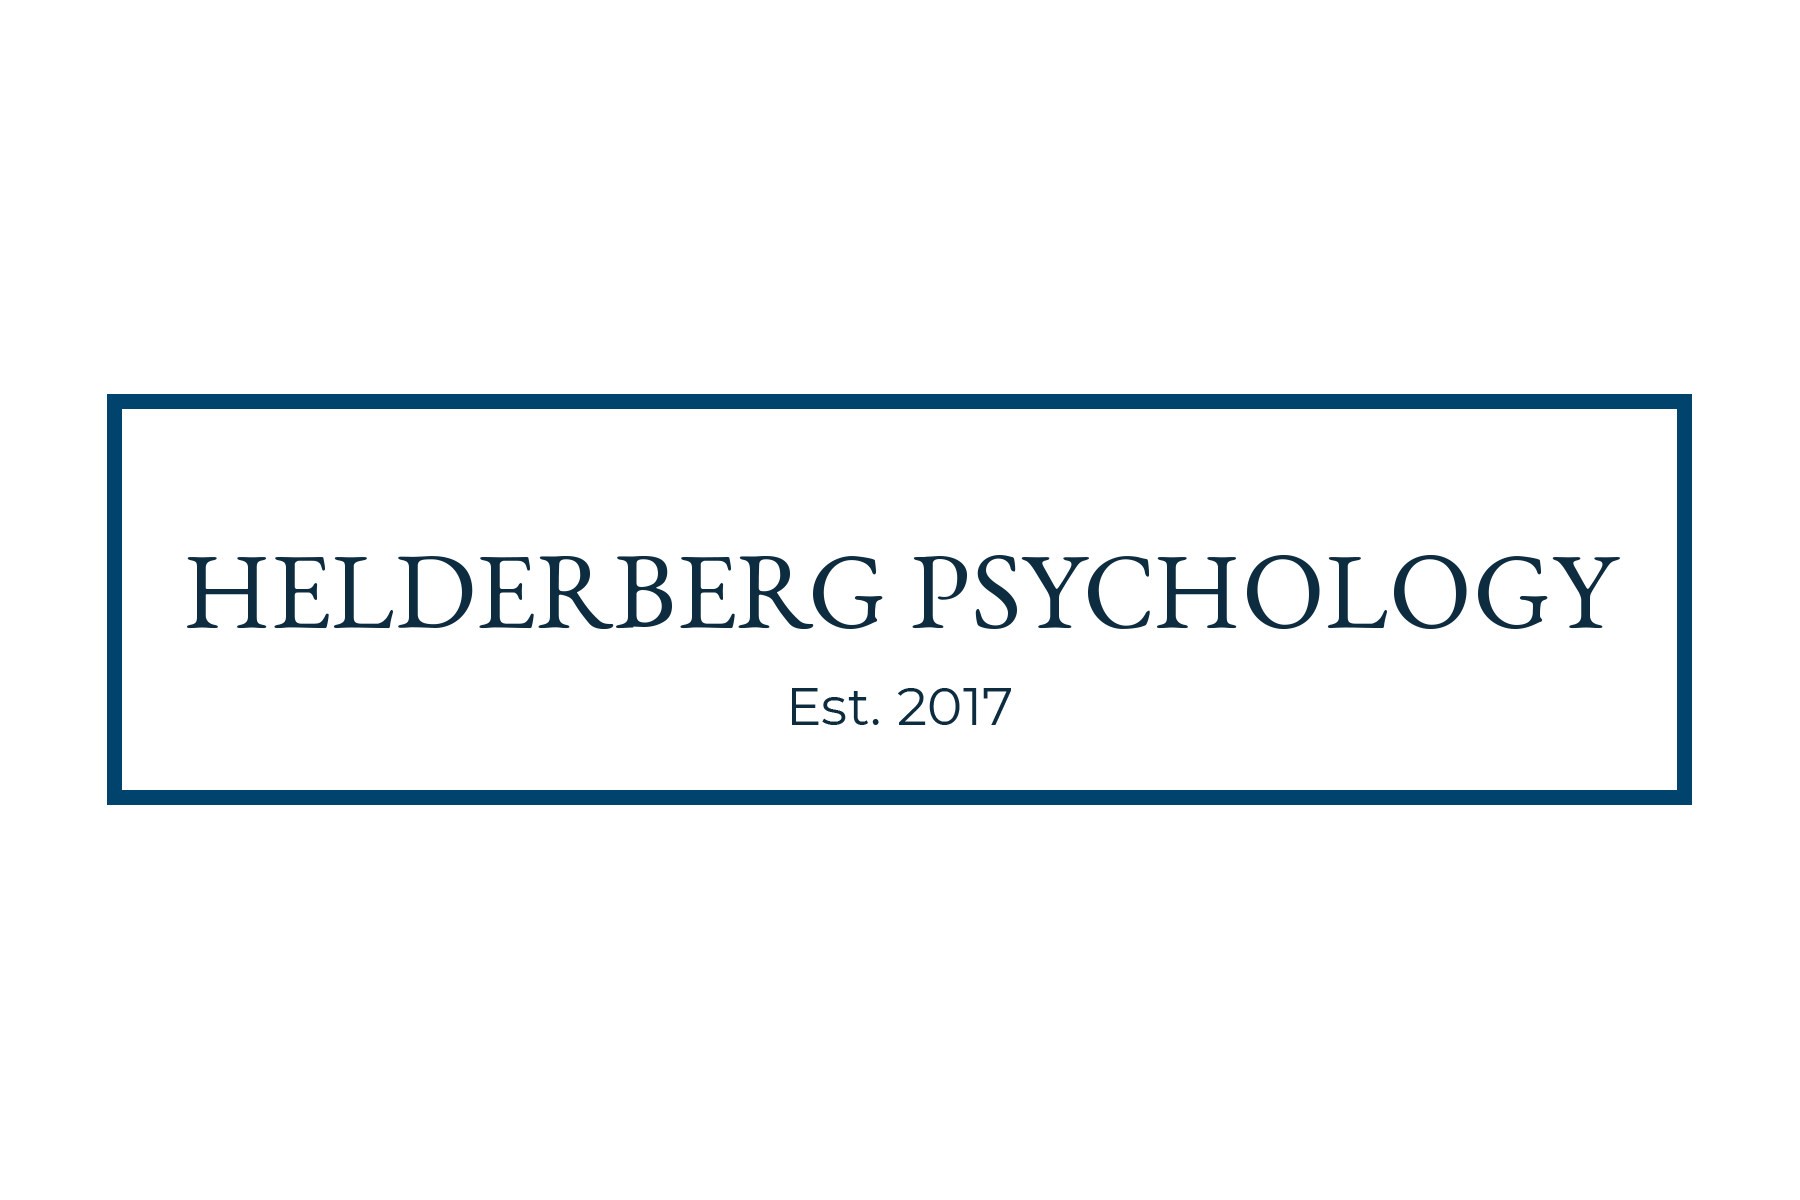 Helderberg Psychology